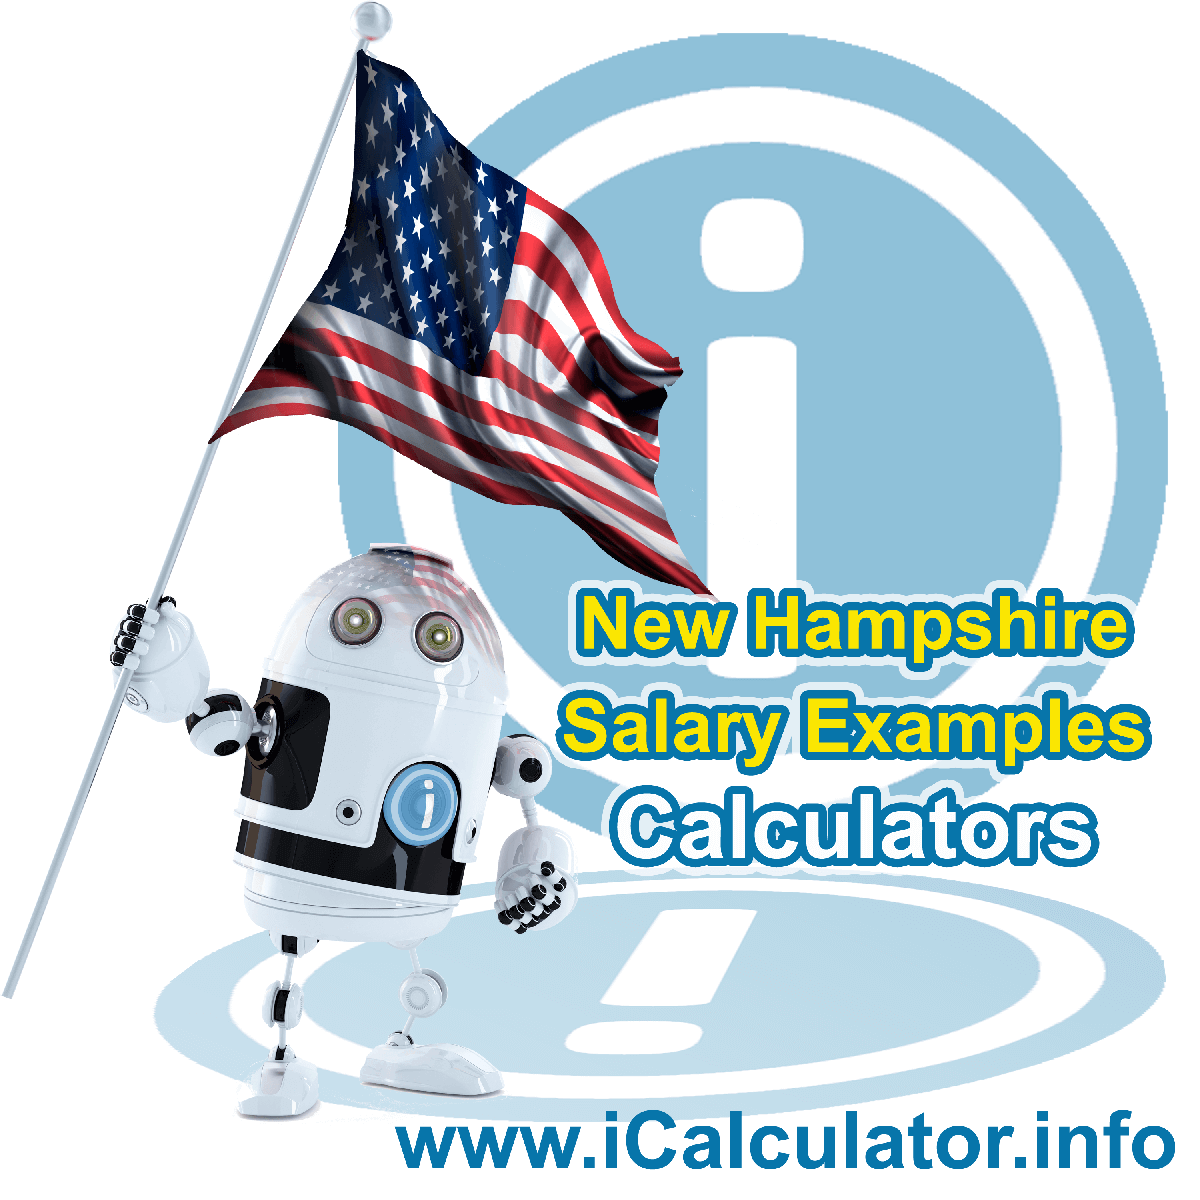 New Hampshire Salary Example for $140,000.00 in 2020 | iCalculator | $140,000.00 salary example for employee and employer paying New Hampshire State tincome taxes. Detailed salary after tax calculation including New Hampshire State Tax, Federal State Tax, Medicare Deductions, Social Security, Capital Gains and other income tax and salary deductions complete with supporting New Hampshire state tax tables